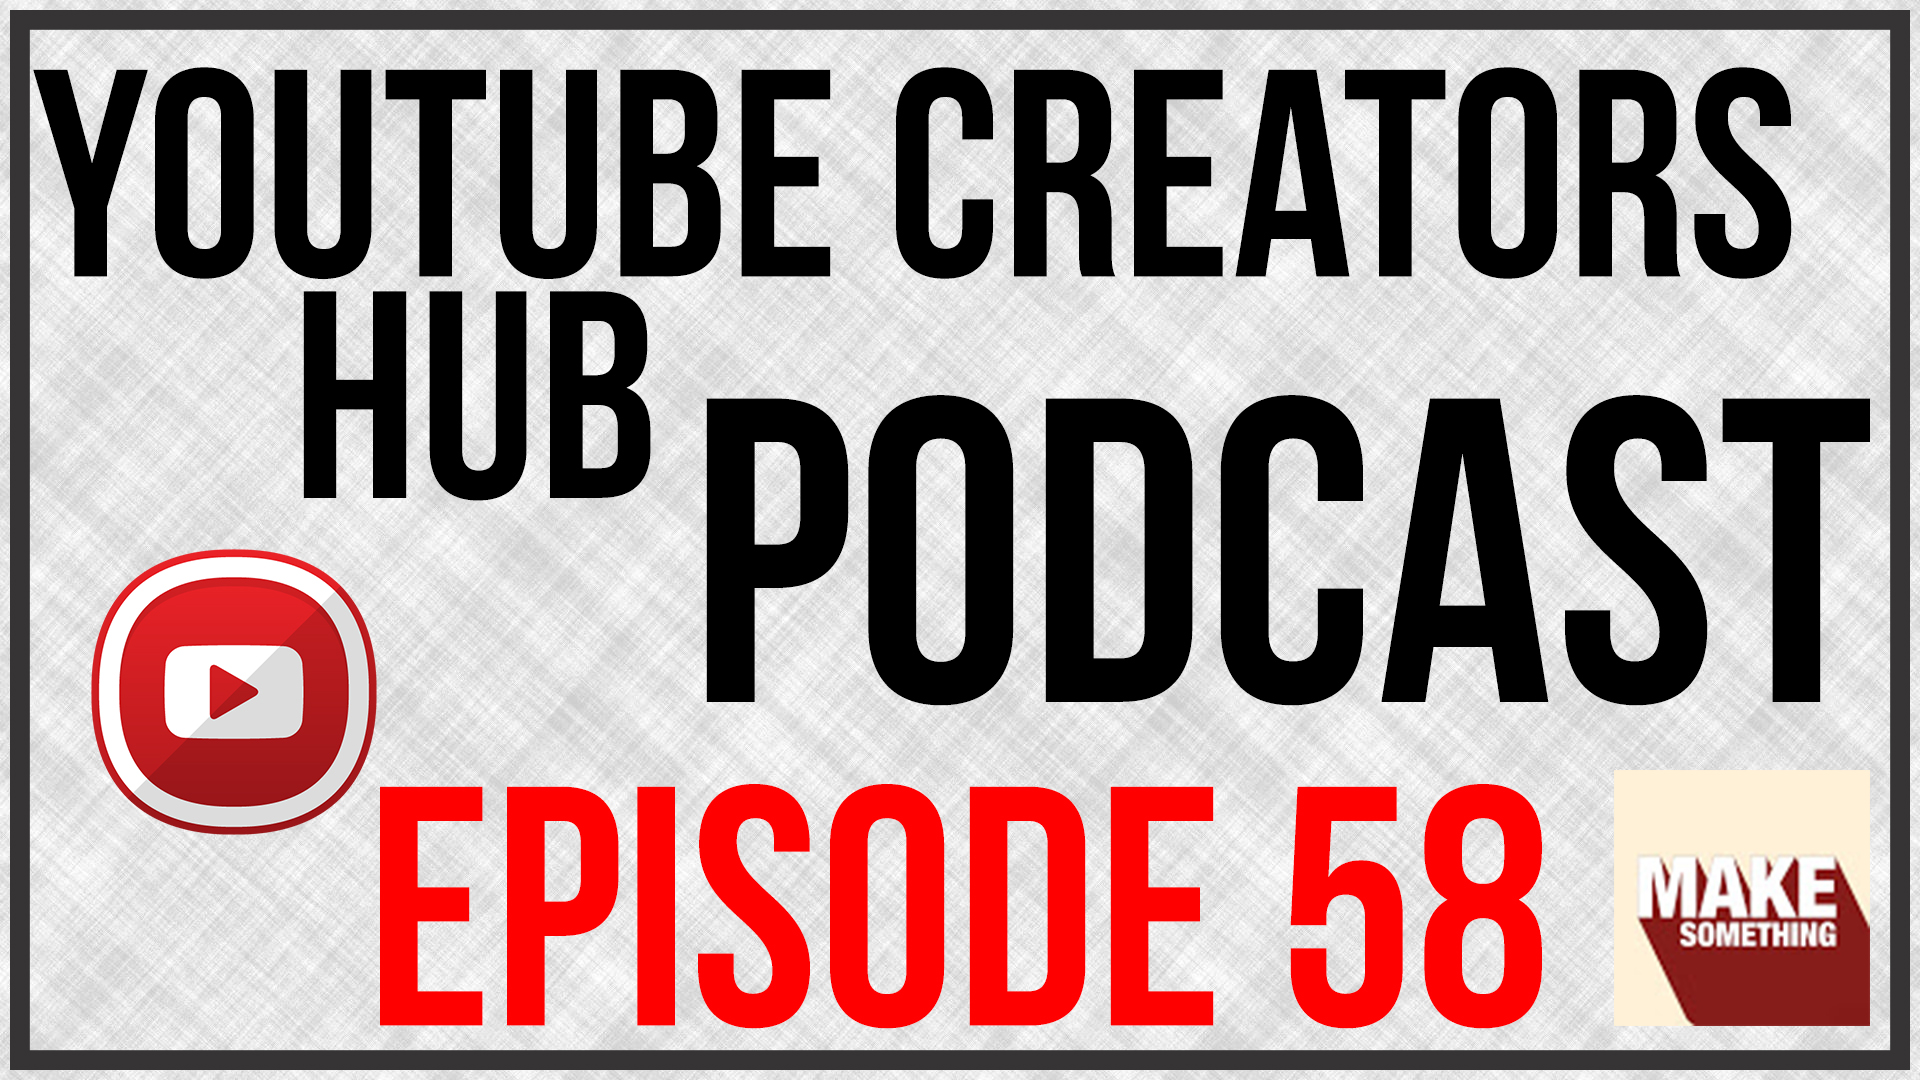 YouTube Creators Hub Podcast Episode 058